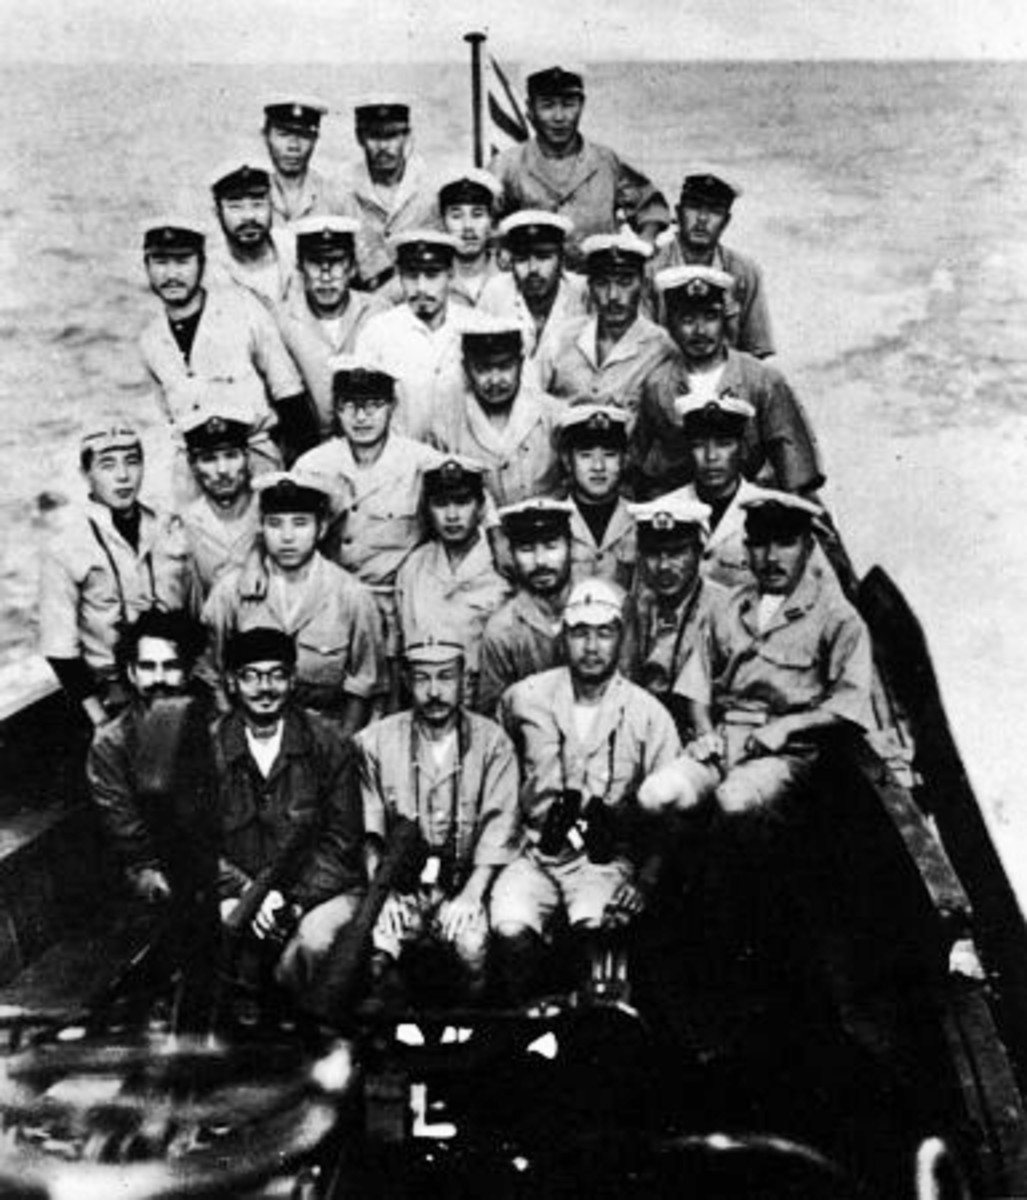 The crew of Japanese submarine with Subhash Chandra Bose